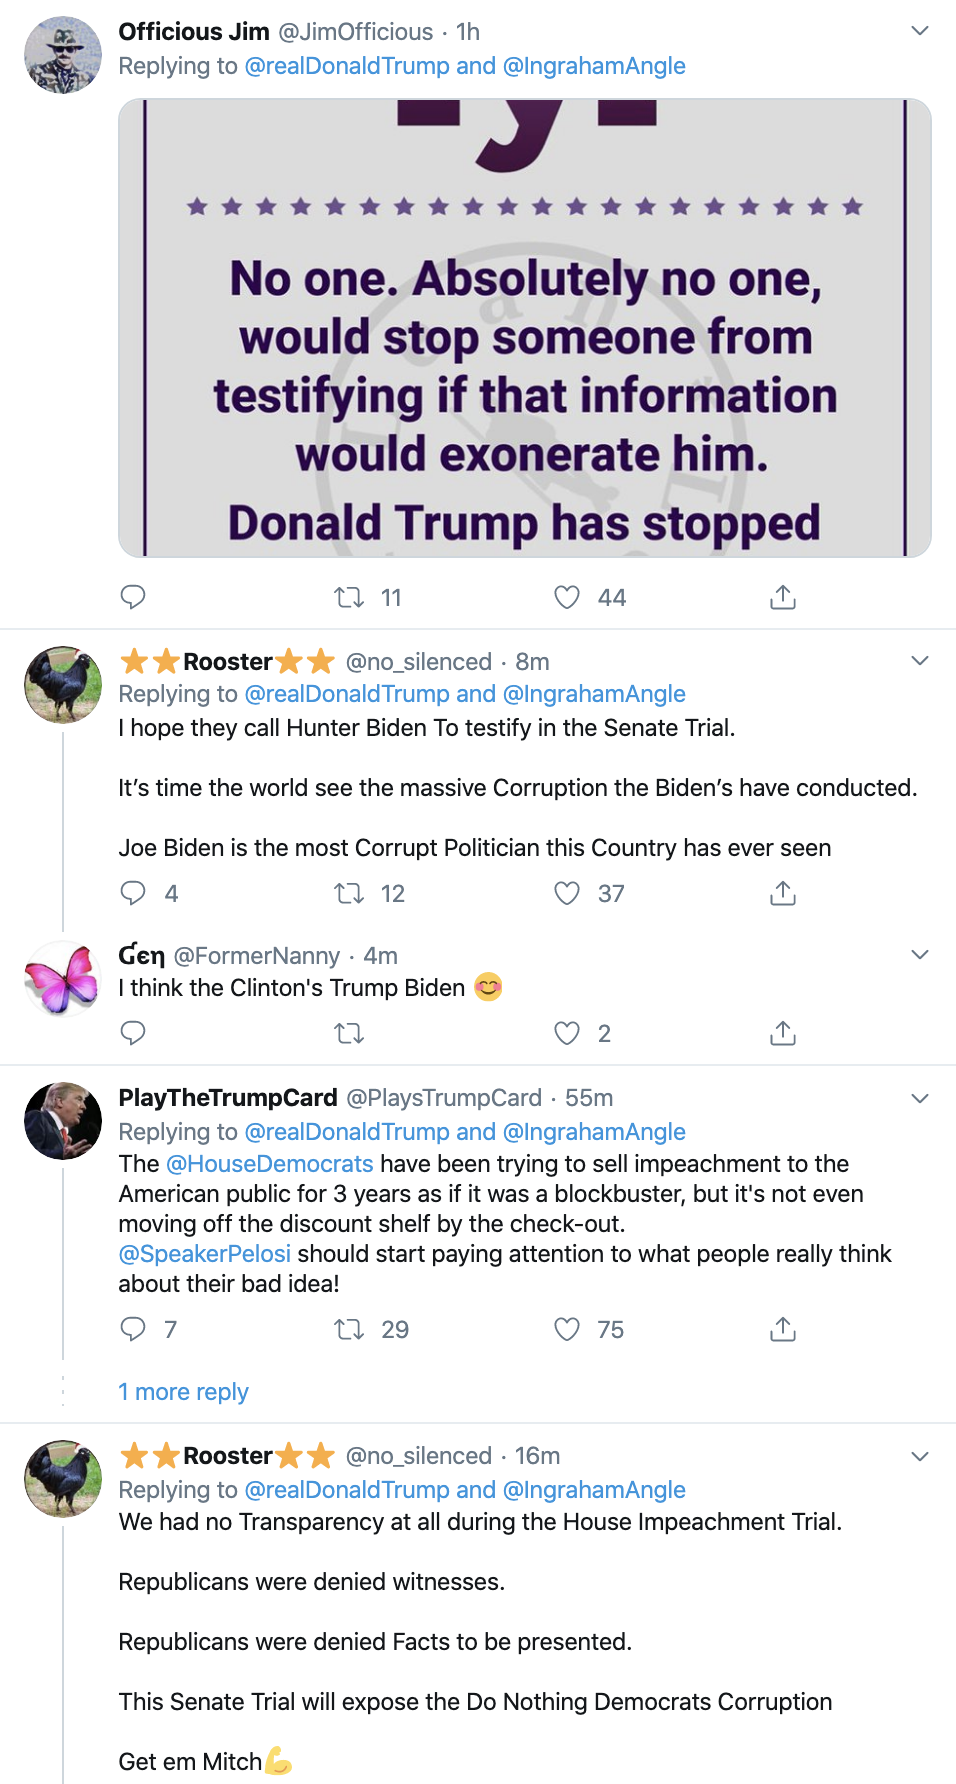 Screen-Shot-2019-12-17-at-10.17.06-AM Trump Gets Out Of Line During Tuesday Twitter Freakout Corruption Economy Featured Impeachment Top Stories